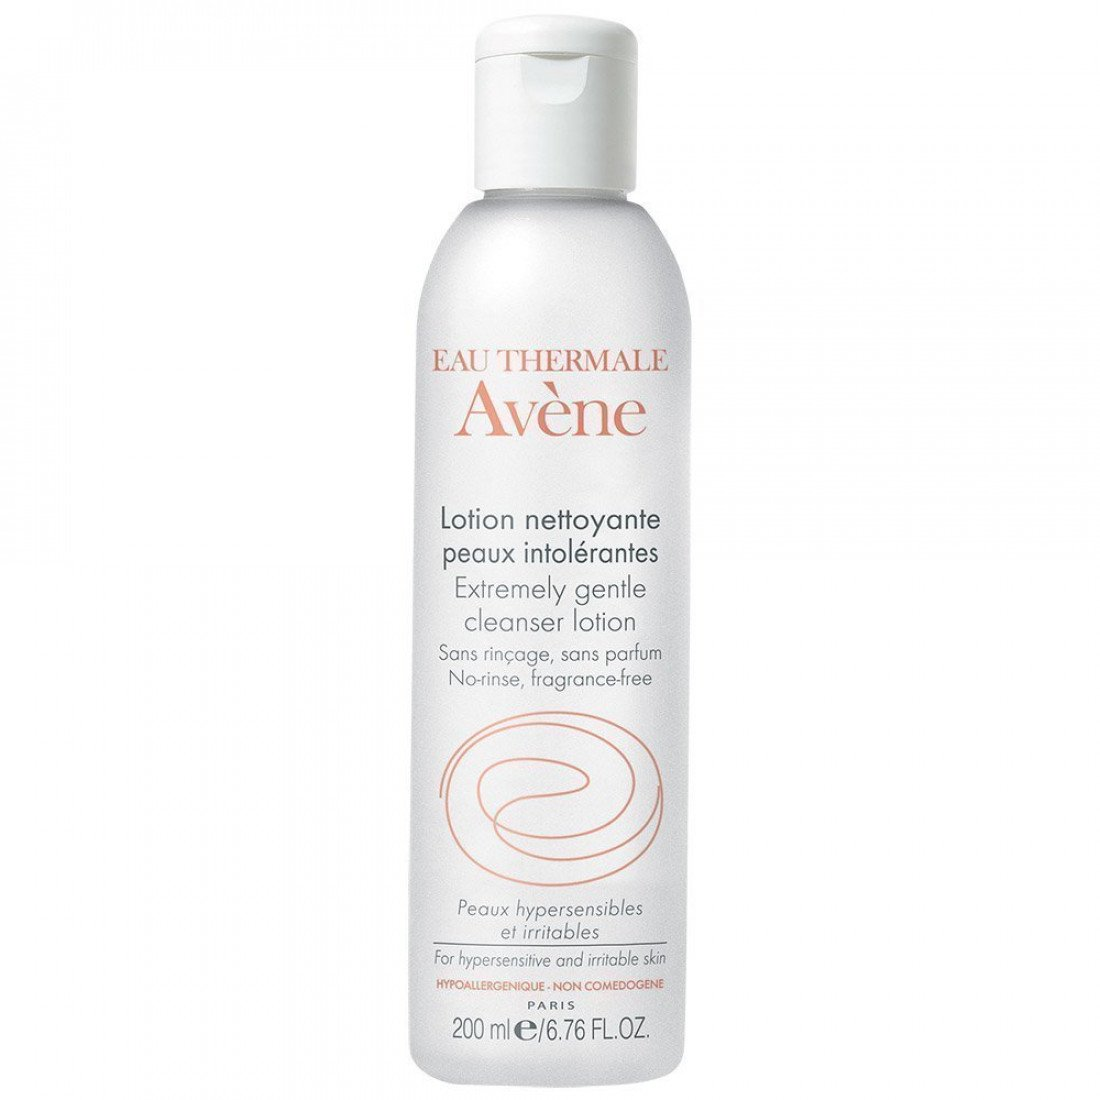 Avene Lotion Extremely gentle cleanser